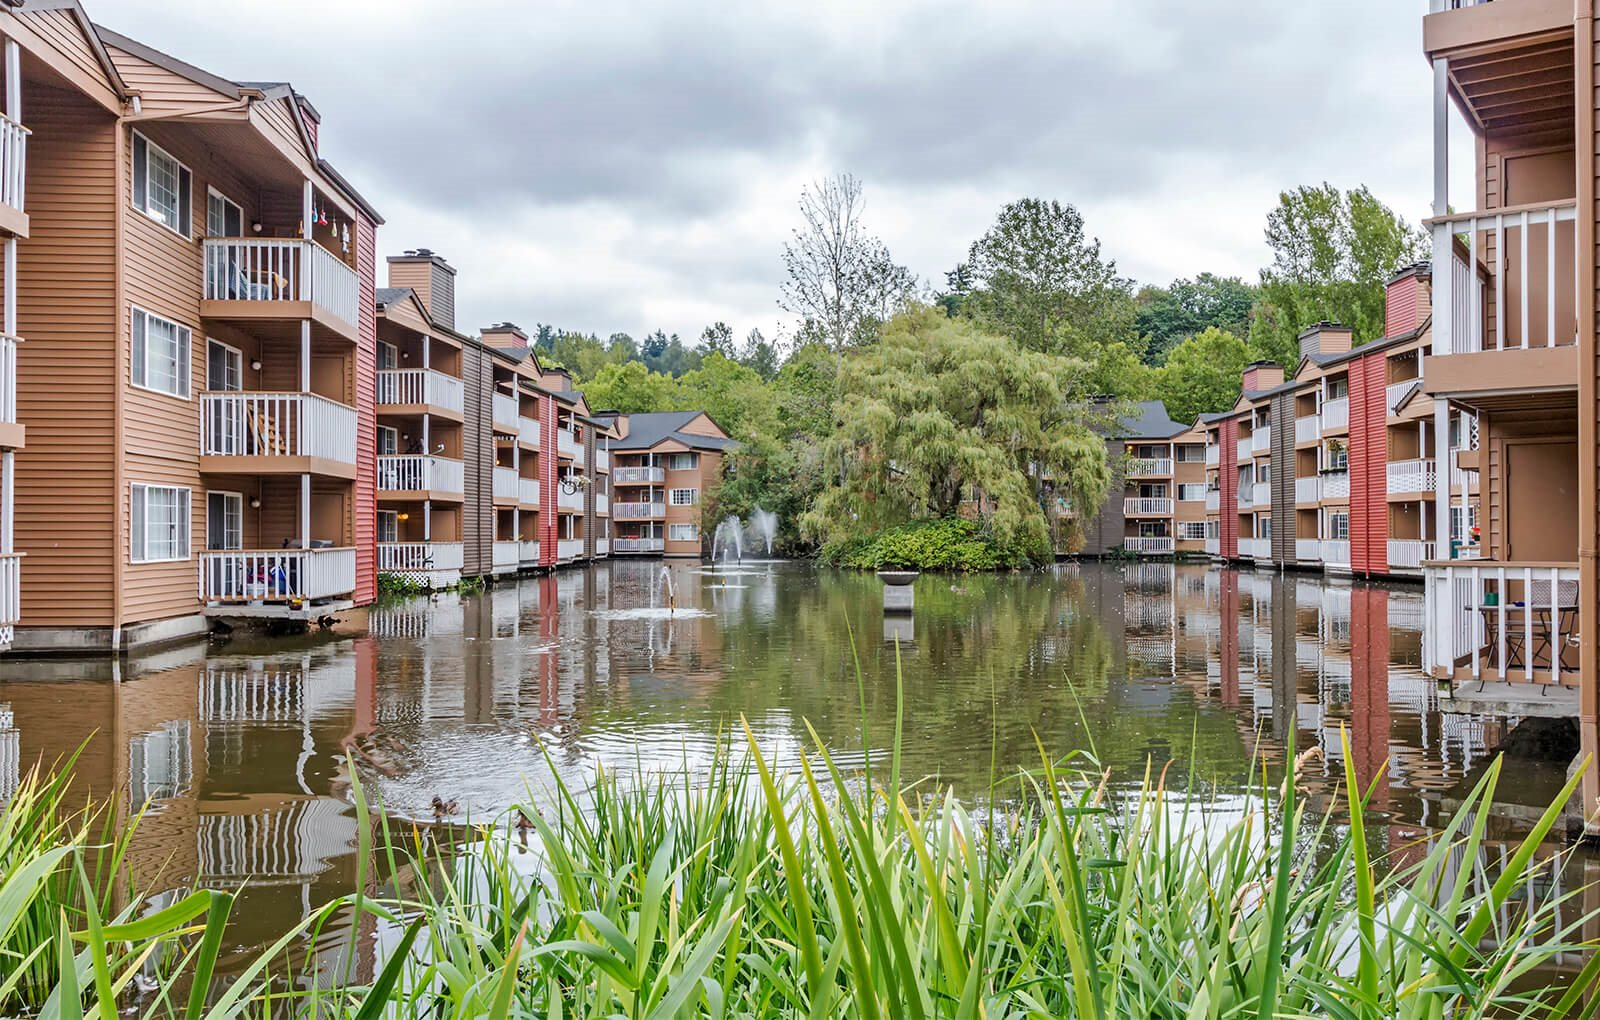 Apartments and duck pond